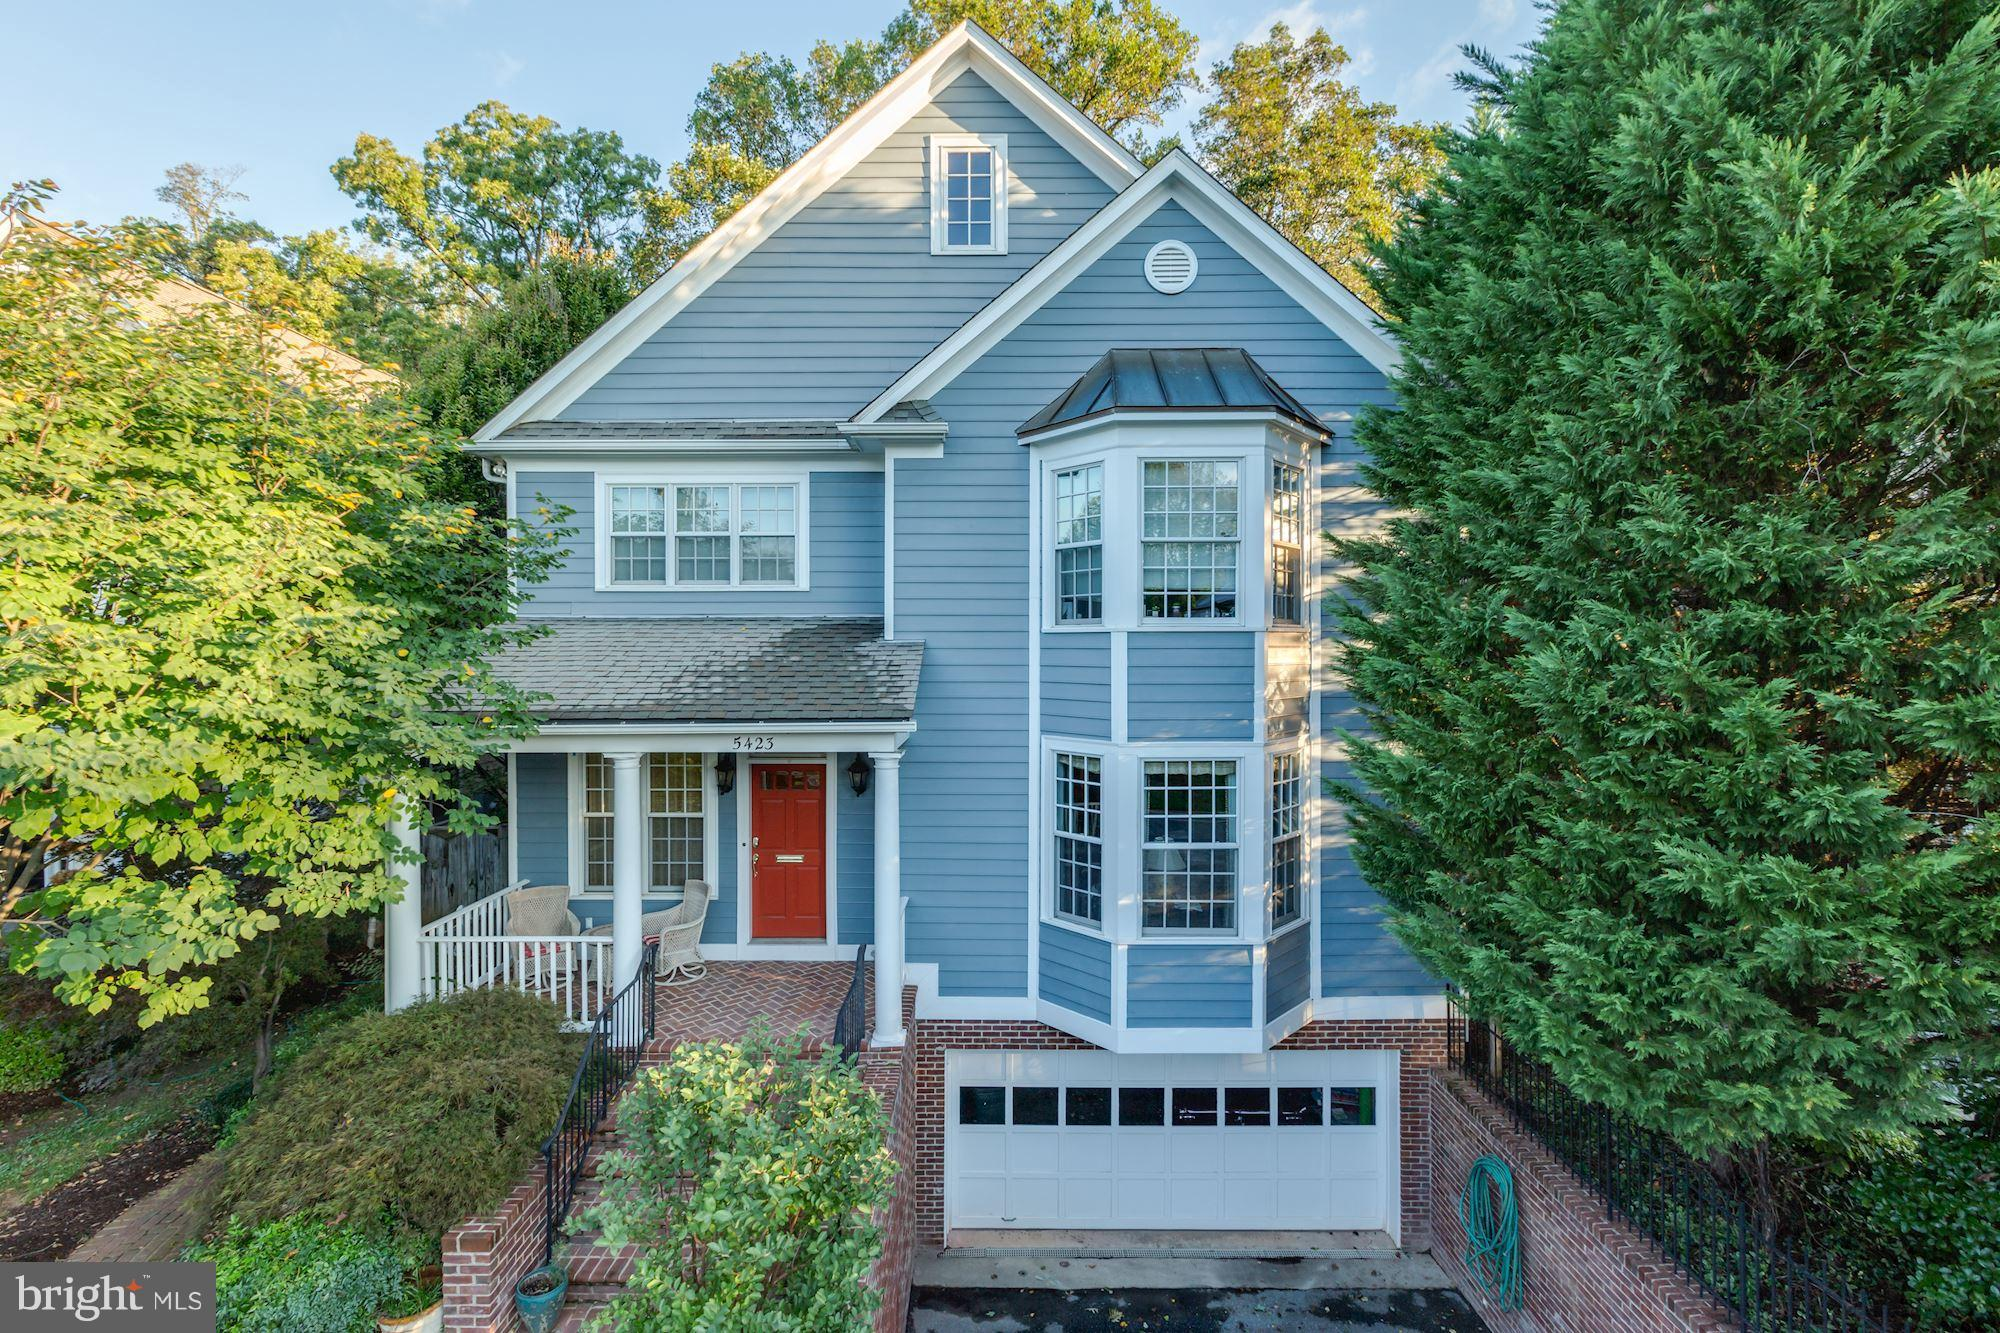 5423 YORK LANE, BETHESDA, MD 20814